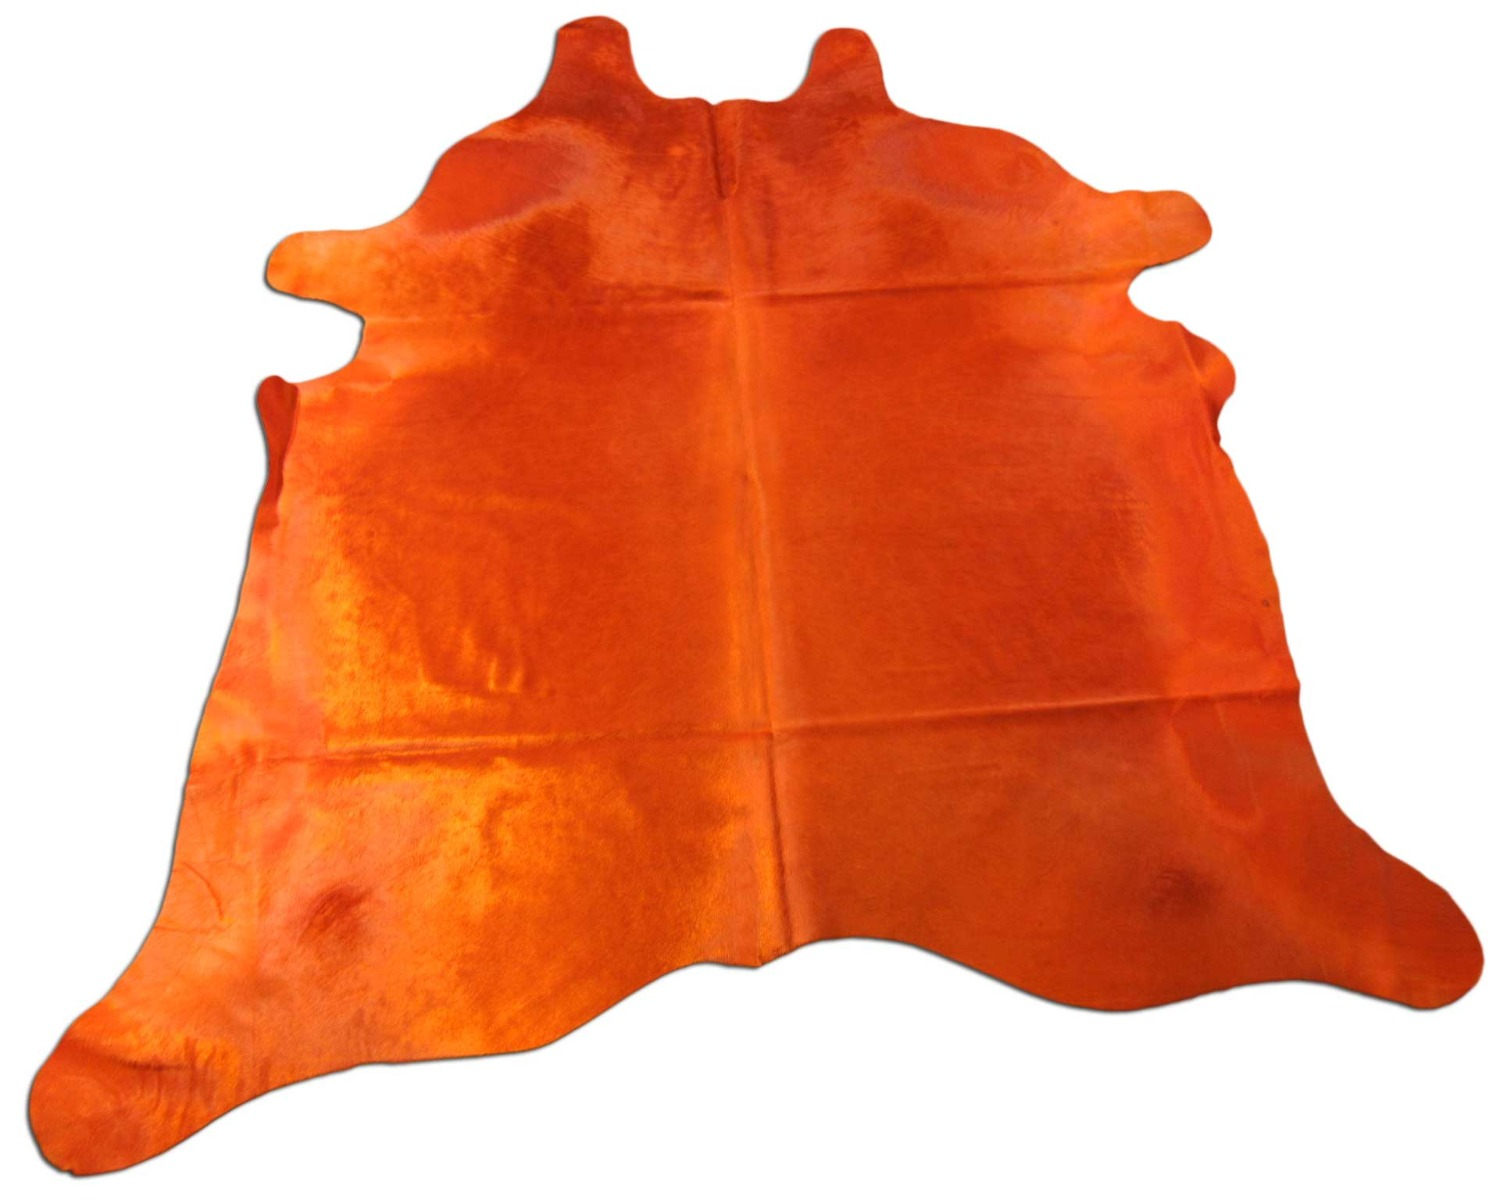 A-1414 Dyed Orange Cowhide Rug Size: 7 1/3' X 7'